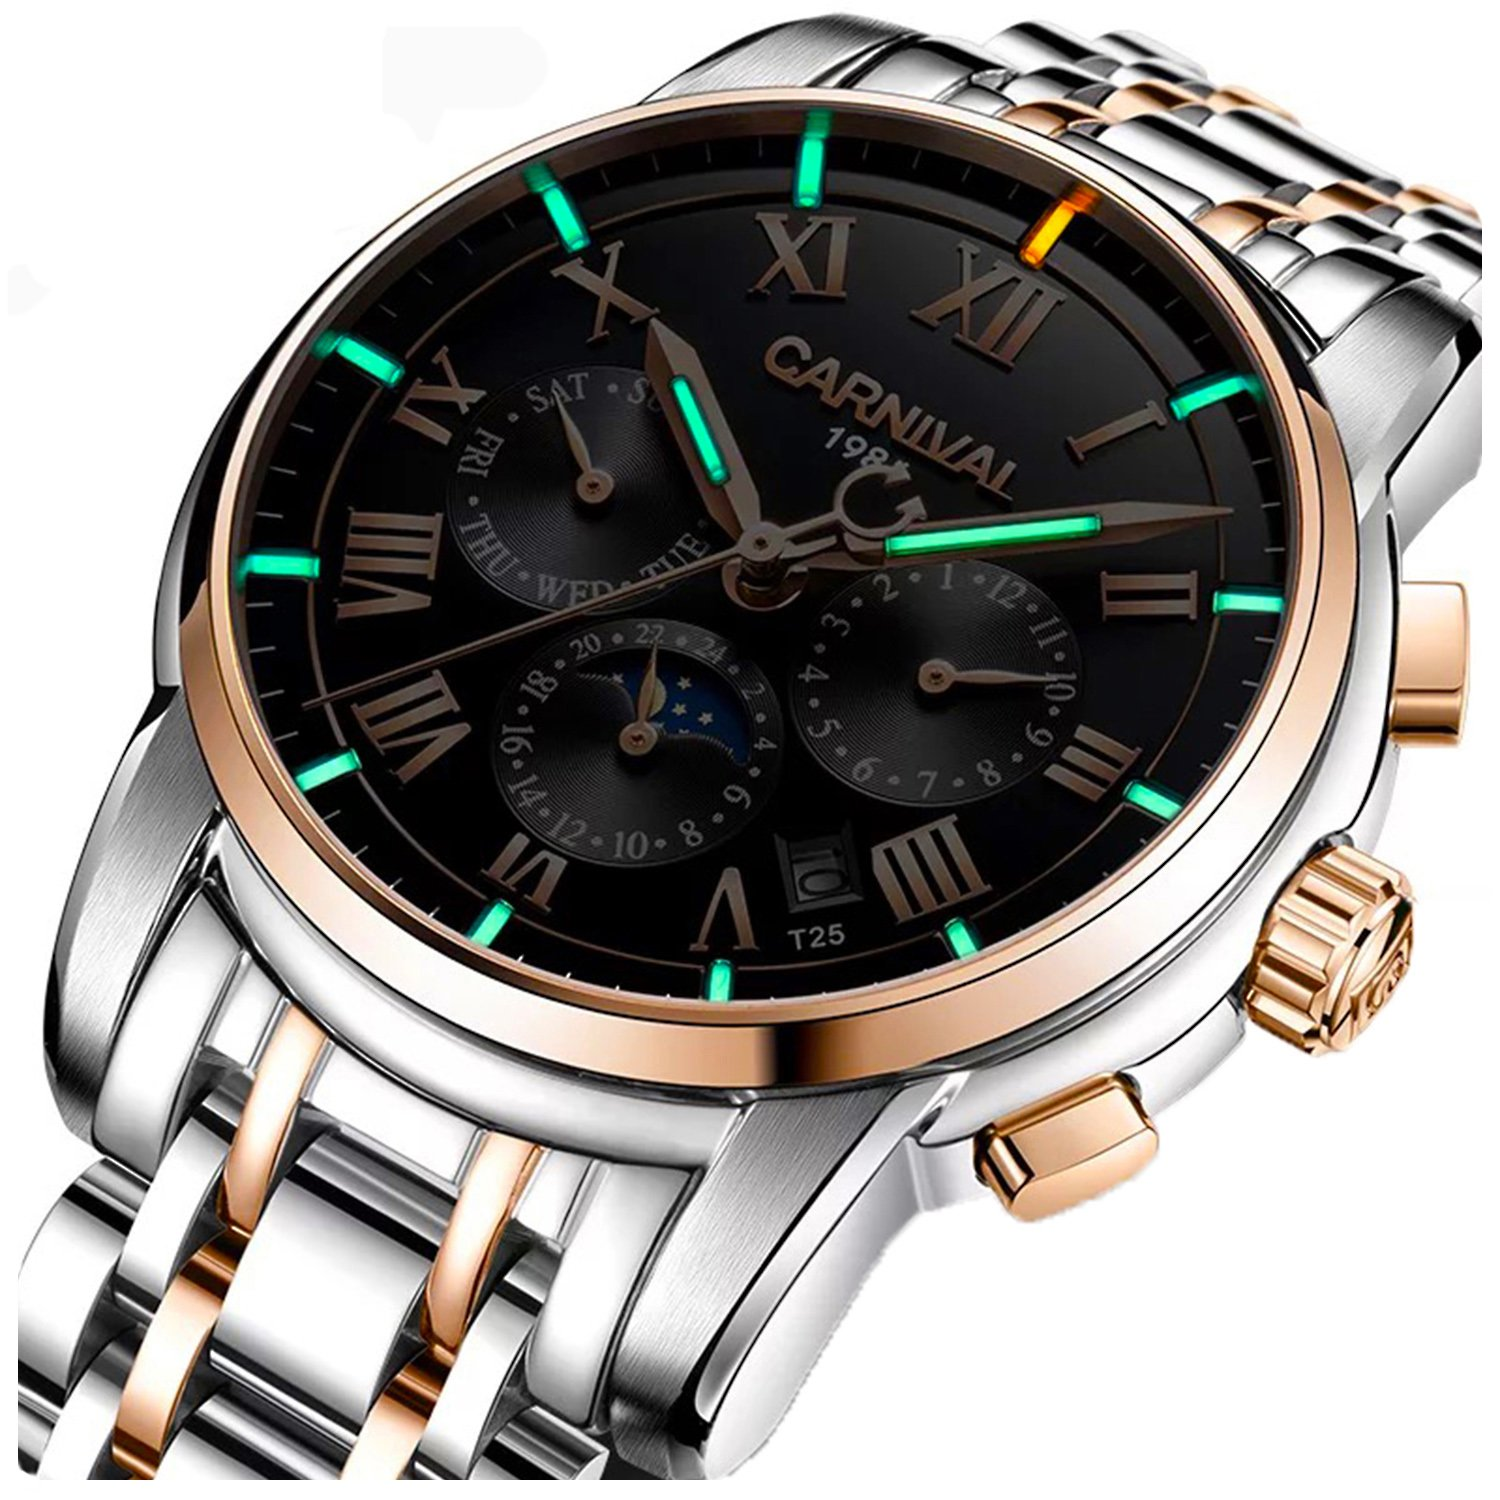 PASOY Carnival Men Tritium Luminous Watch Automatic Mechanical Tourbillon Date Black Dial Skeleton Watch